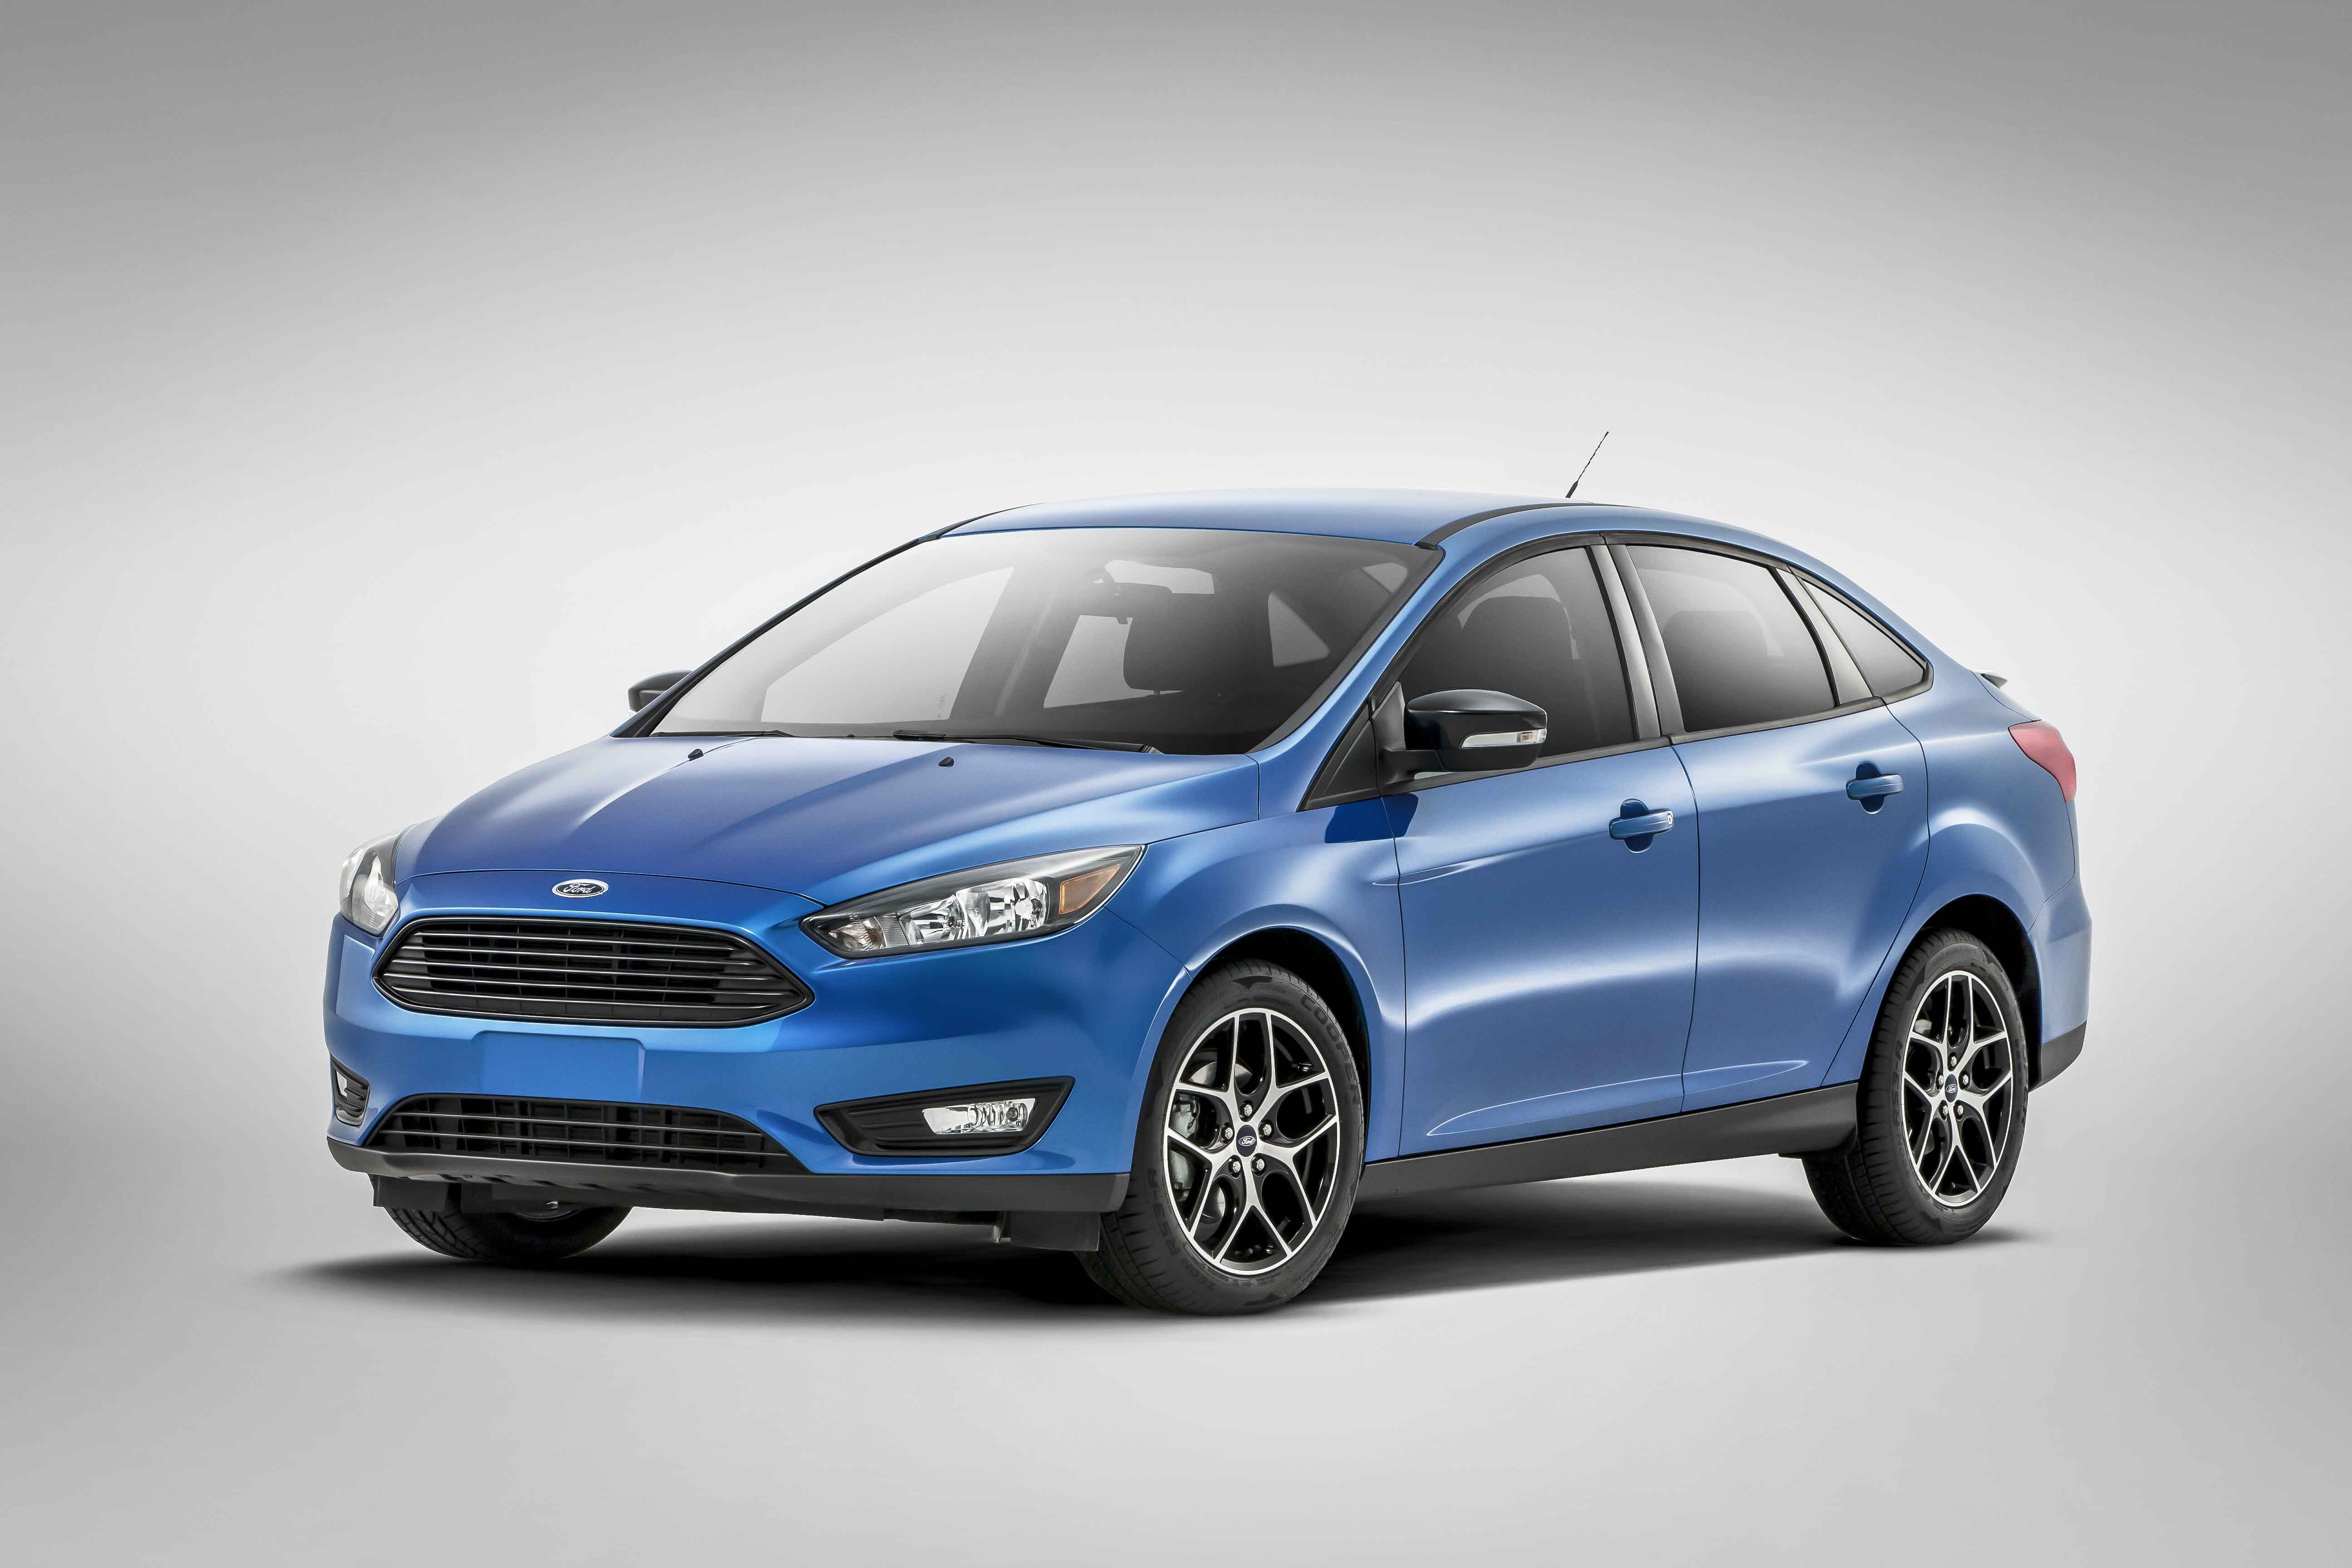 2015 Ford Focus: 5 Reasons to Buy